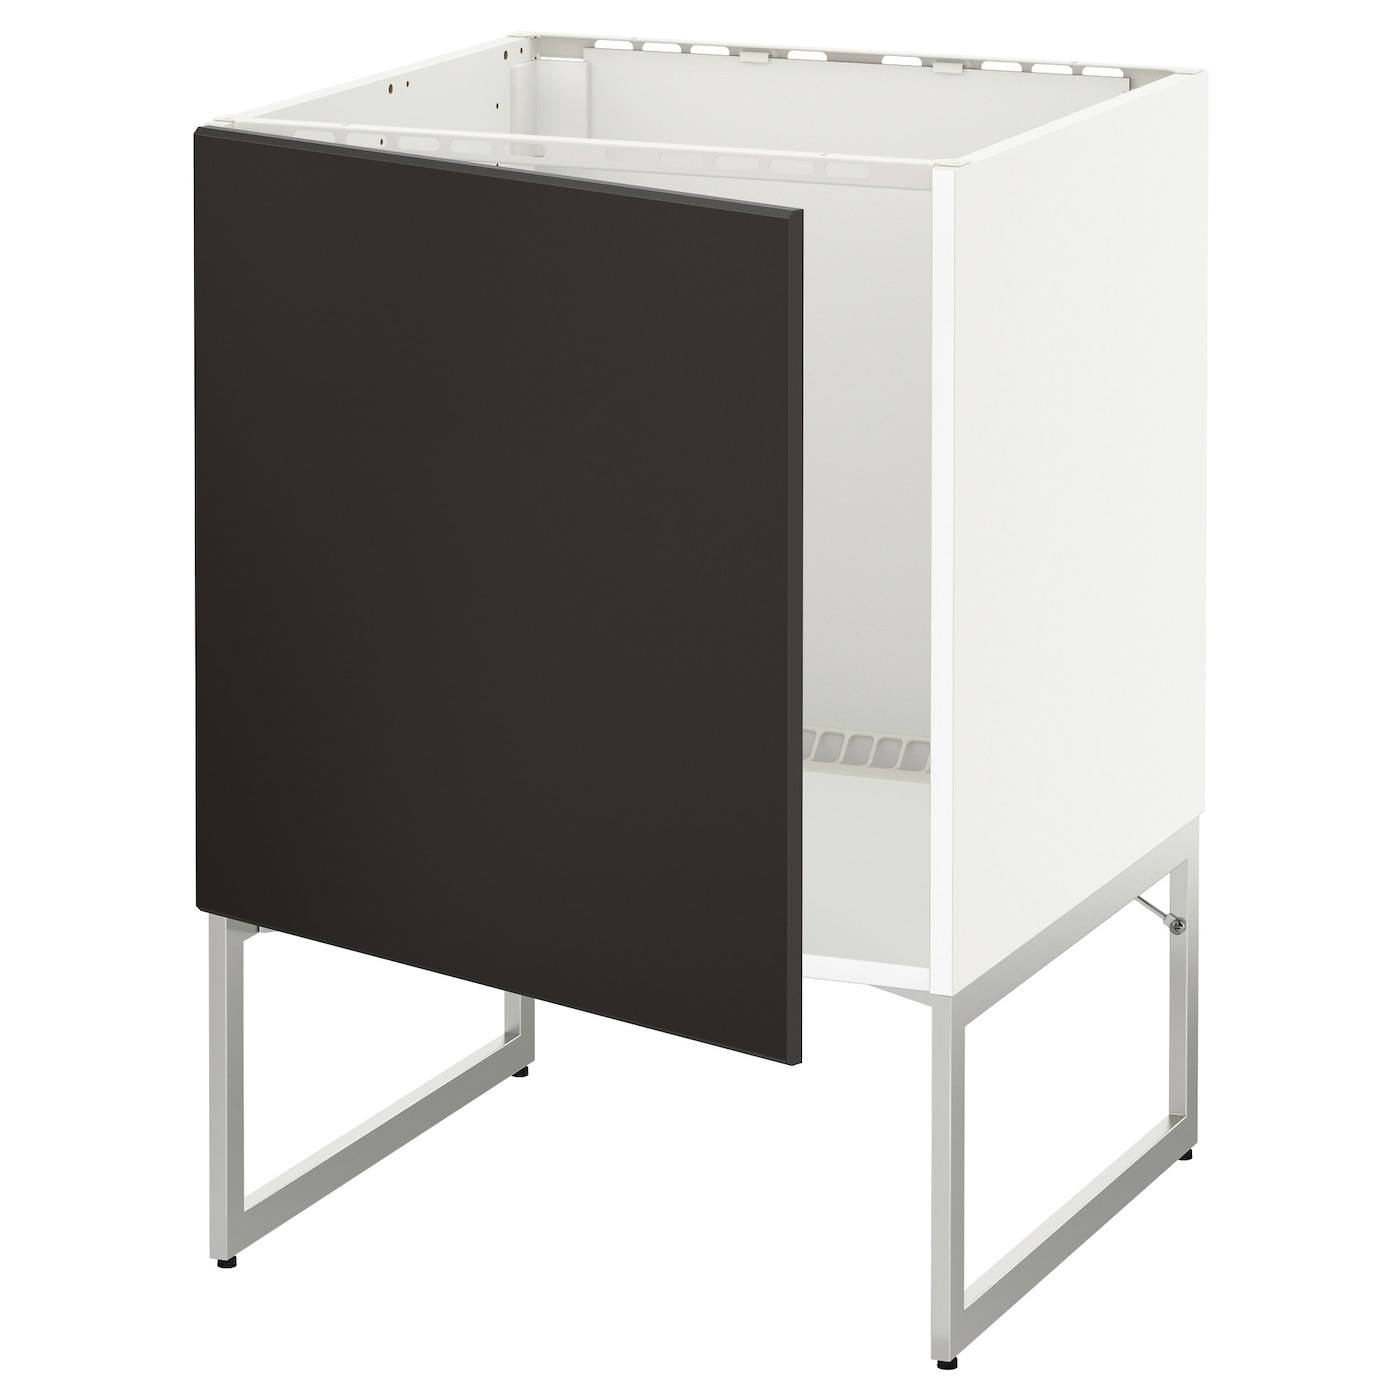 METOD Base Cabinet For Sink White/kungsbacka Anthracite